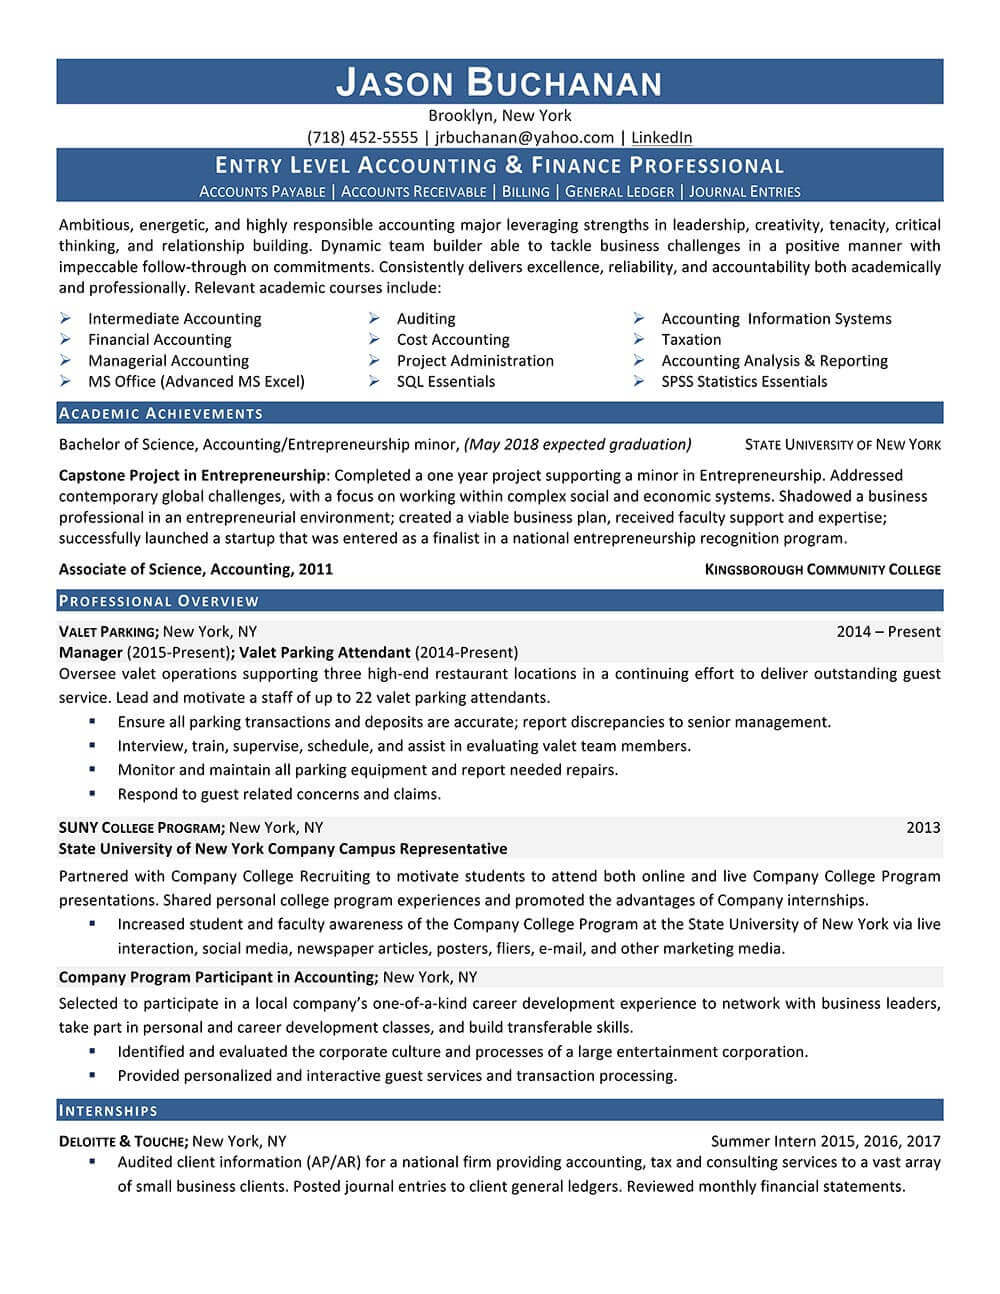 professional resume writing services monster writers linkedin after recent graduate agent Resume Professional Resume Writers Linkedin